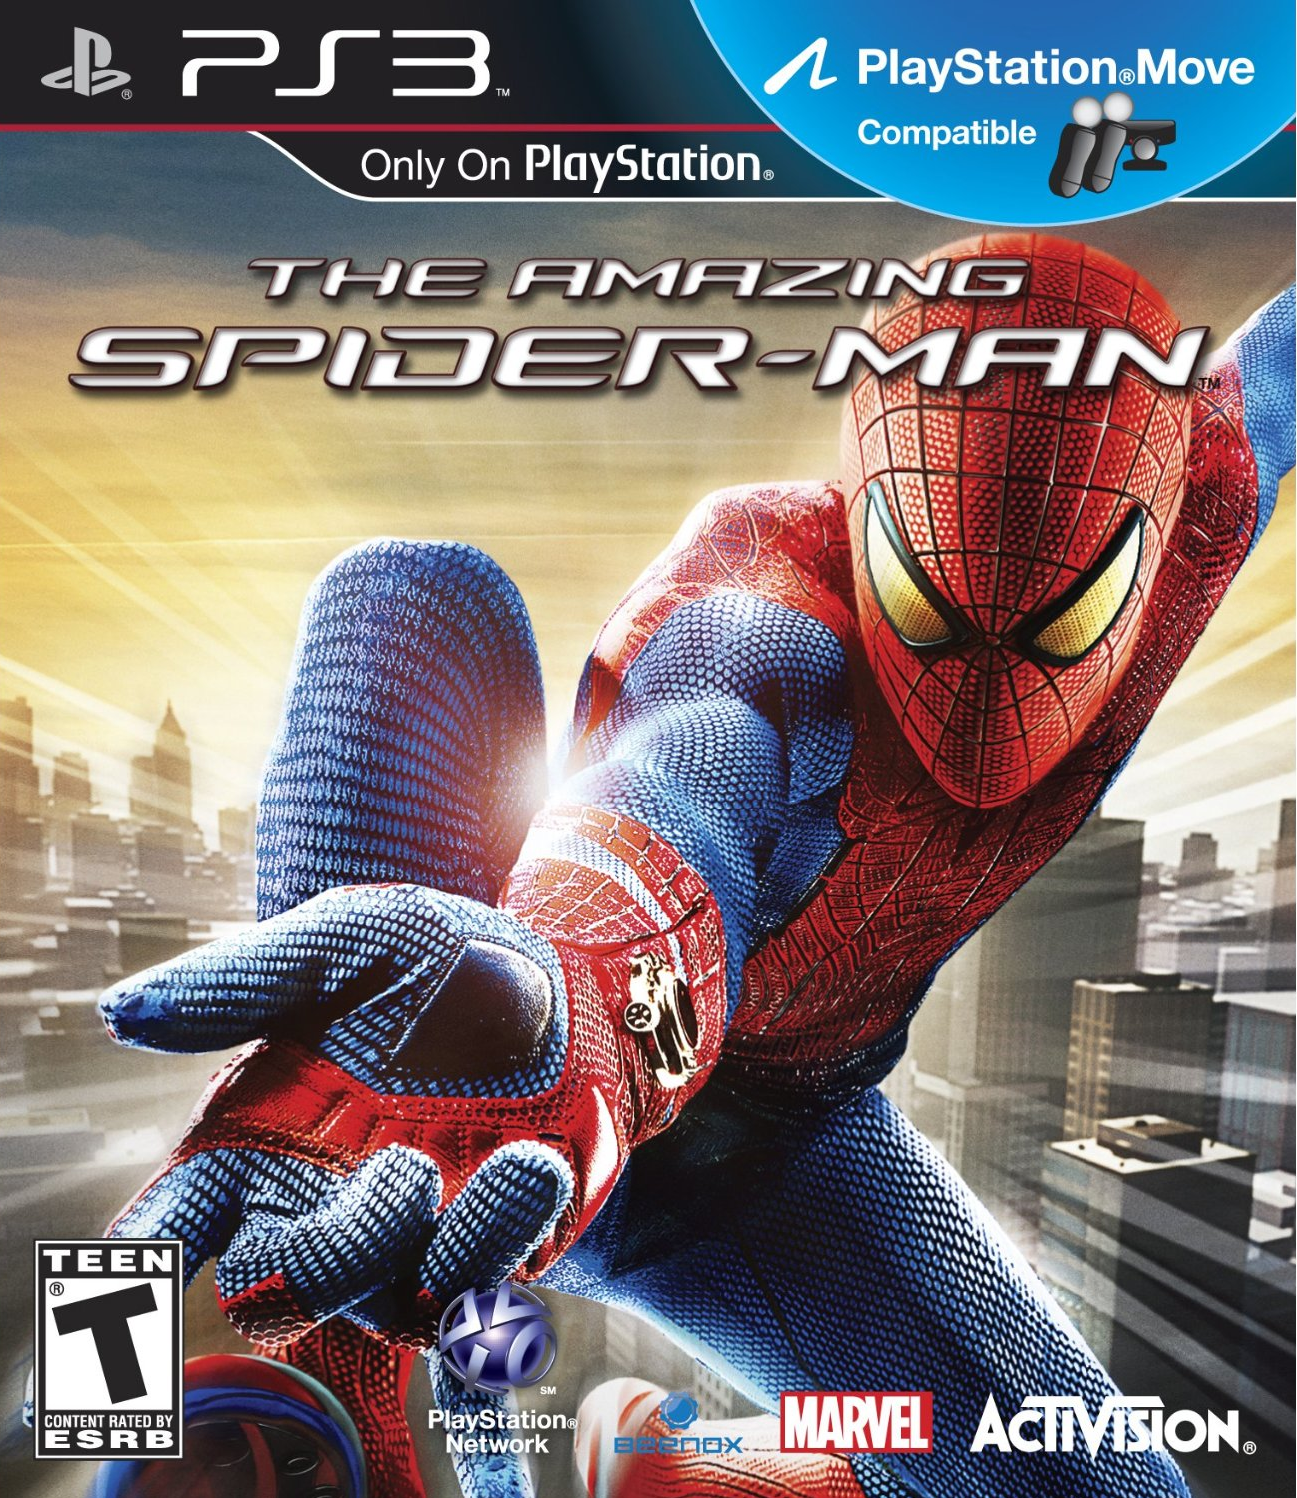 The Amazing Spider-Man - PS3 game 1.png